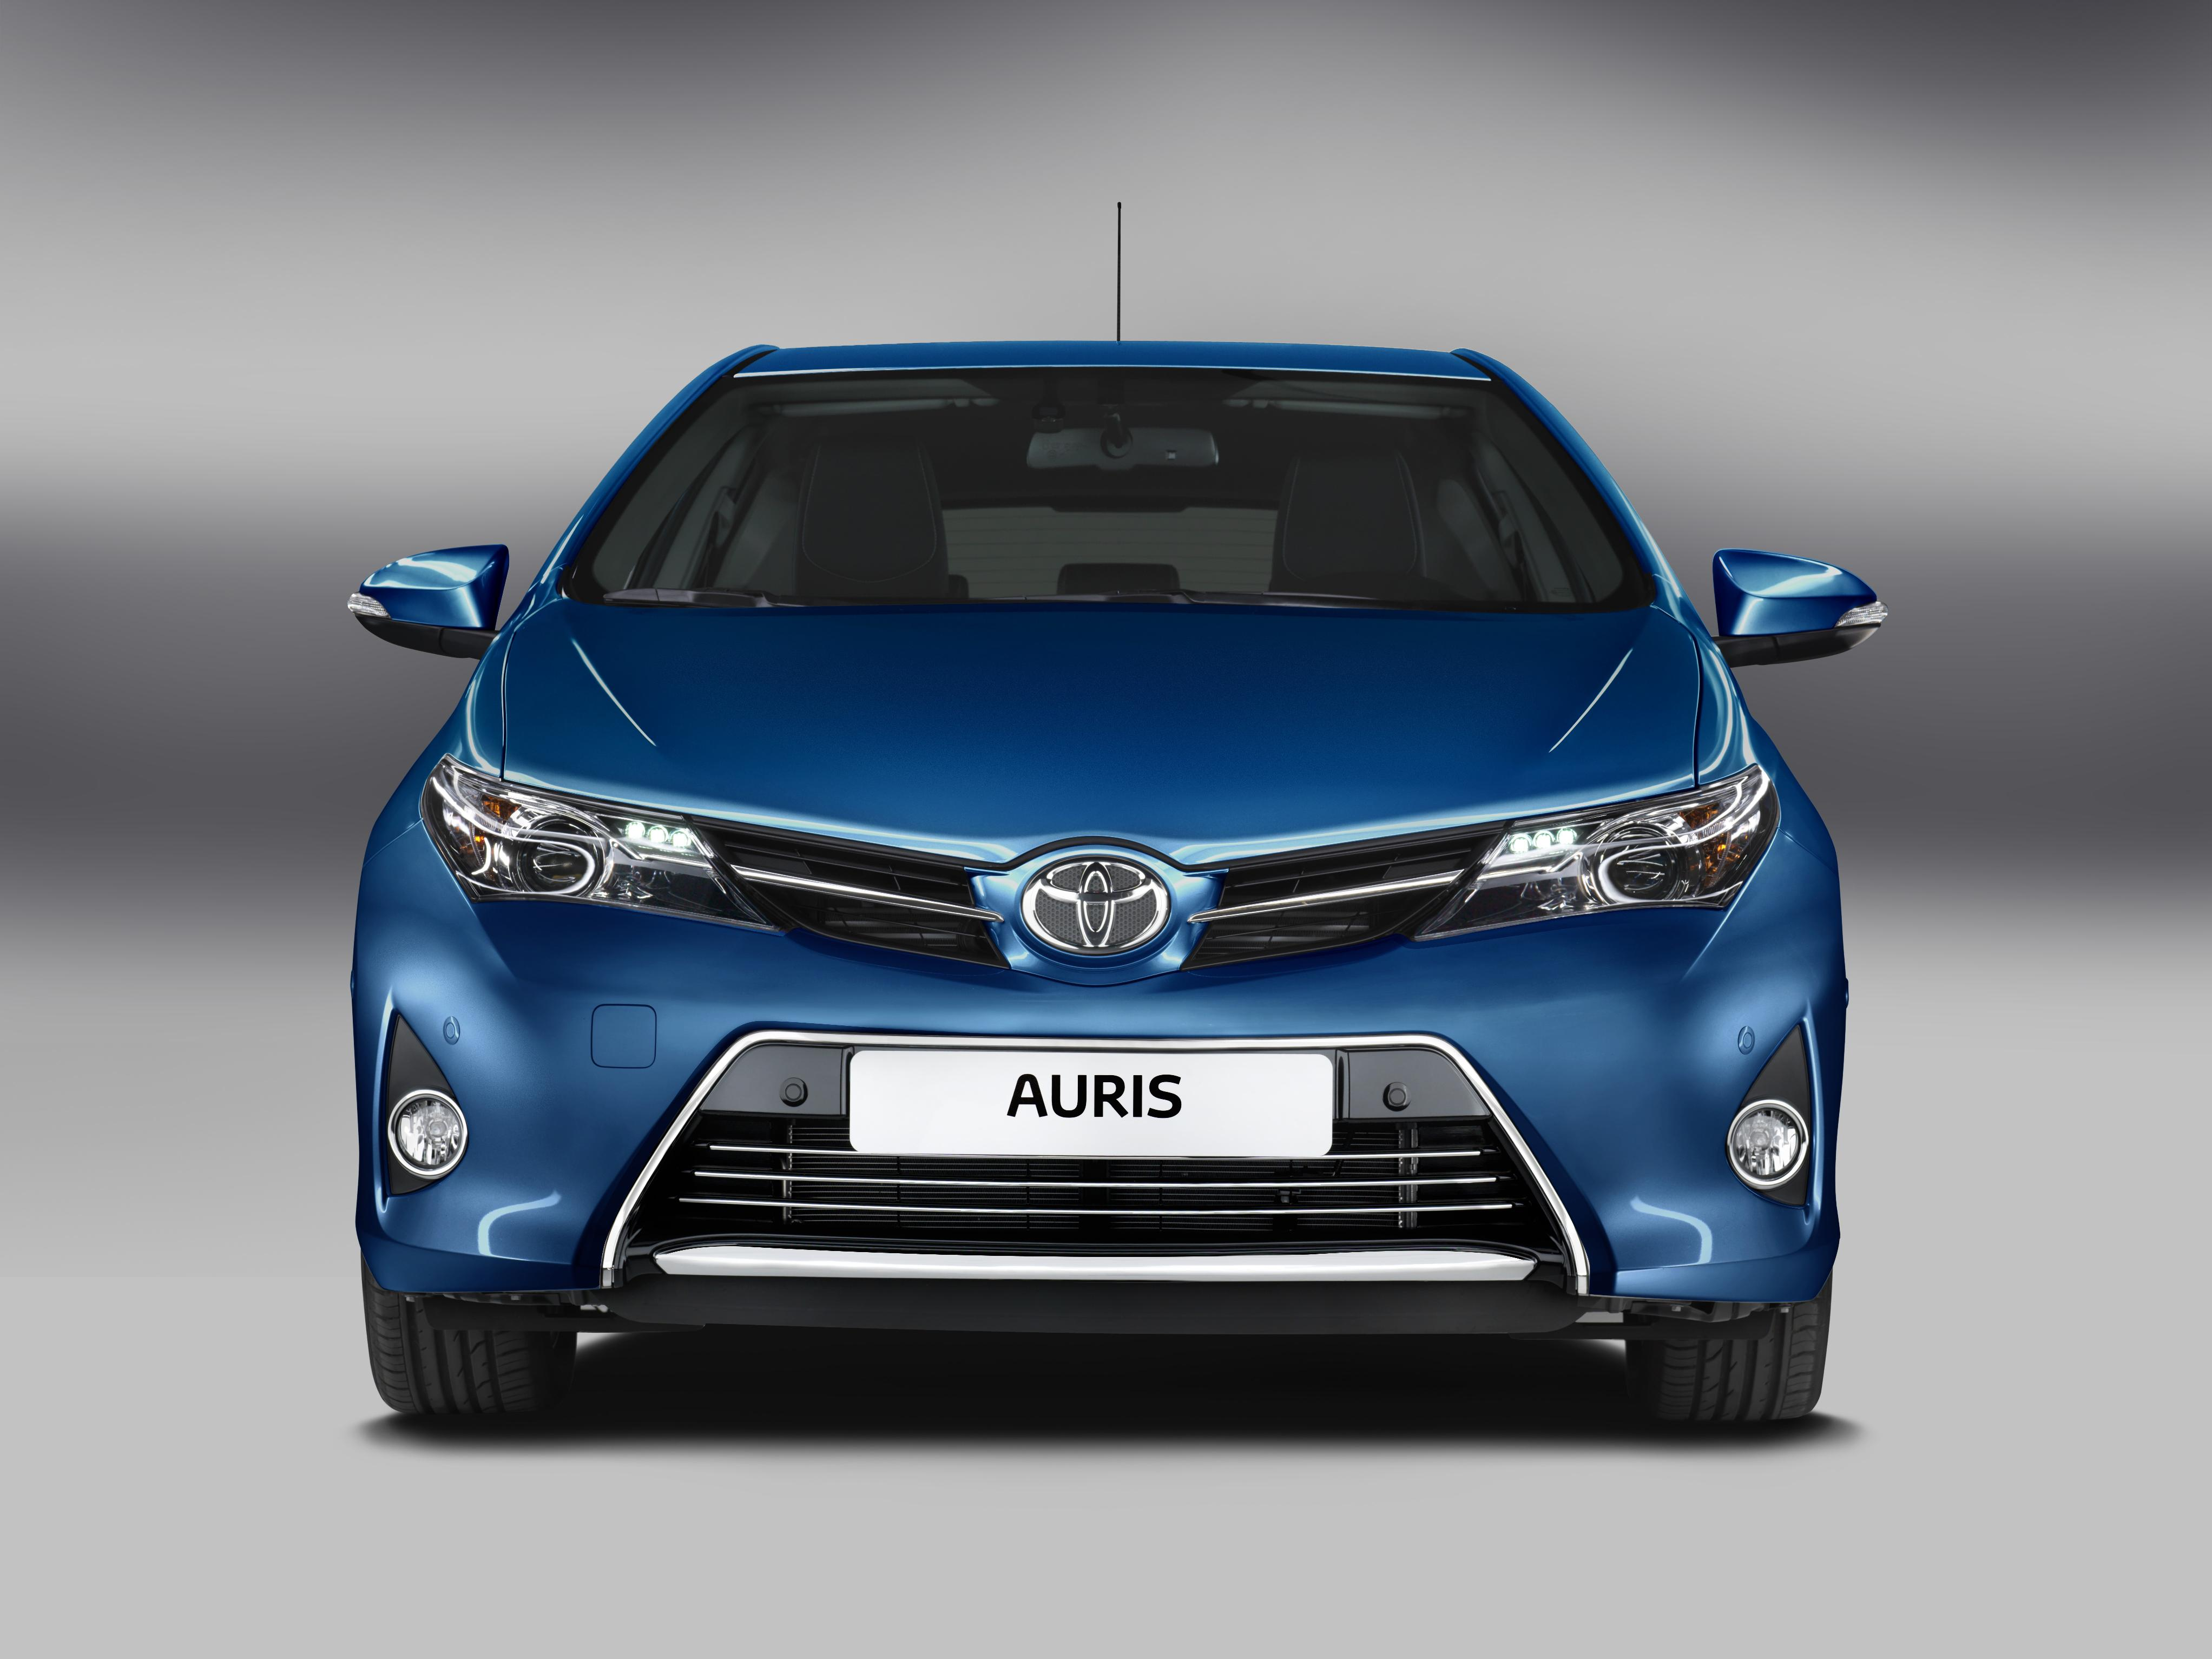 2013 toyota auris hybrid to debut in paris. Black Bedroom Furniture Sets. Home Design Ideas